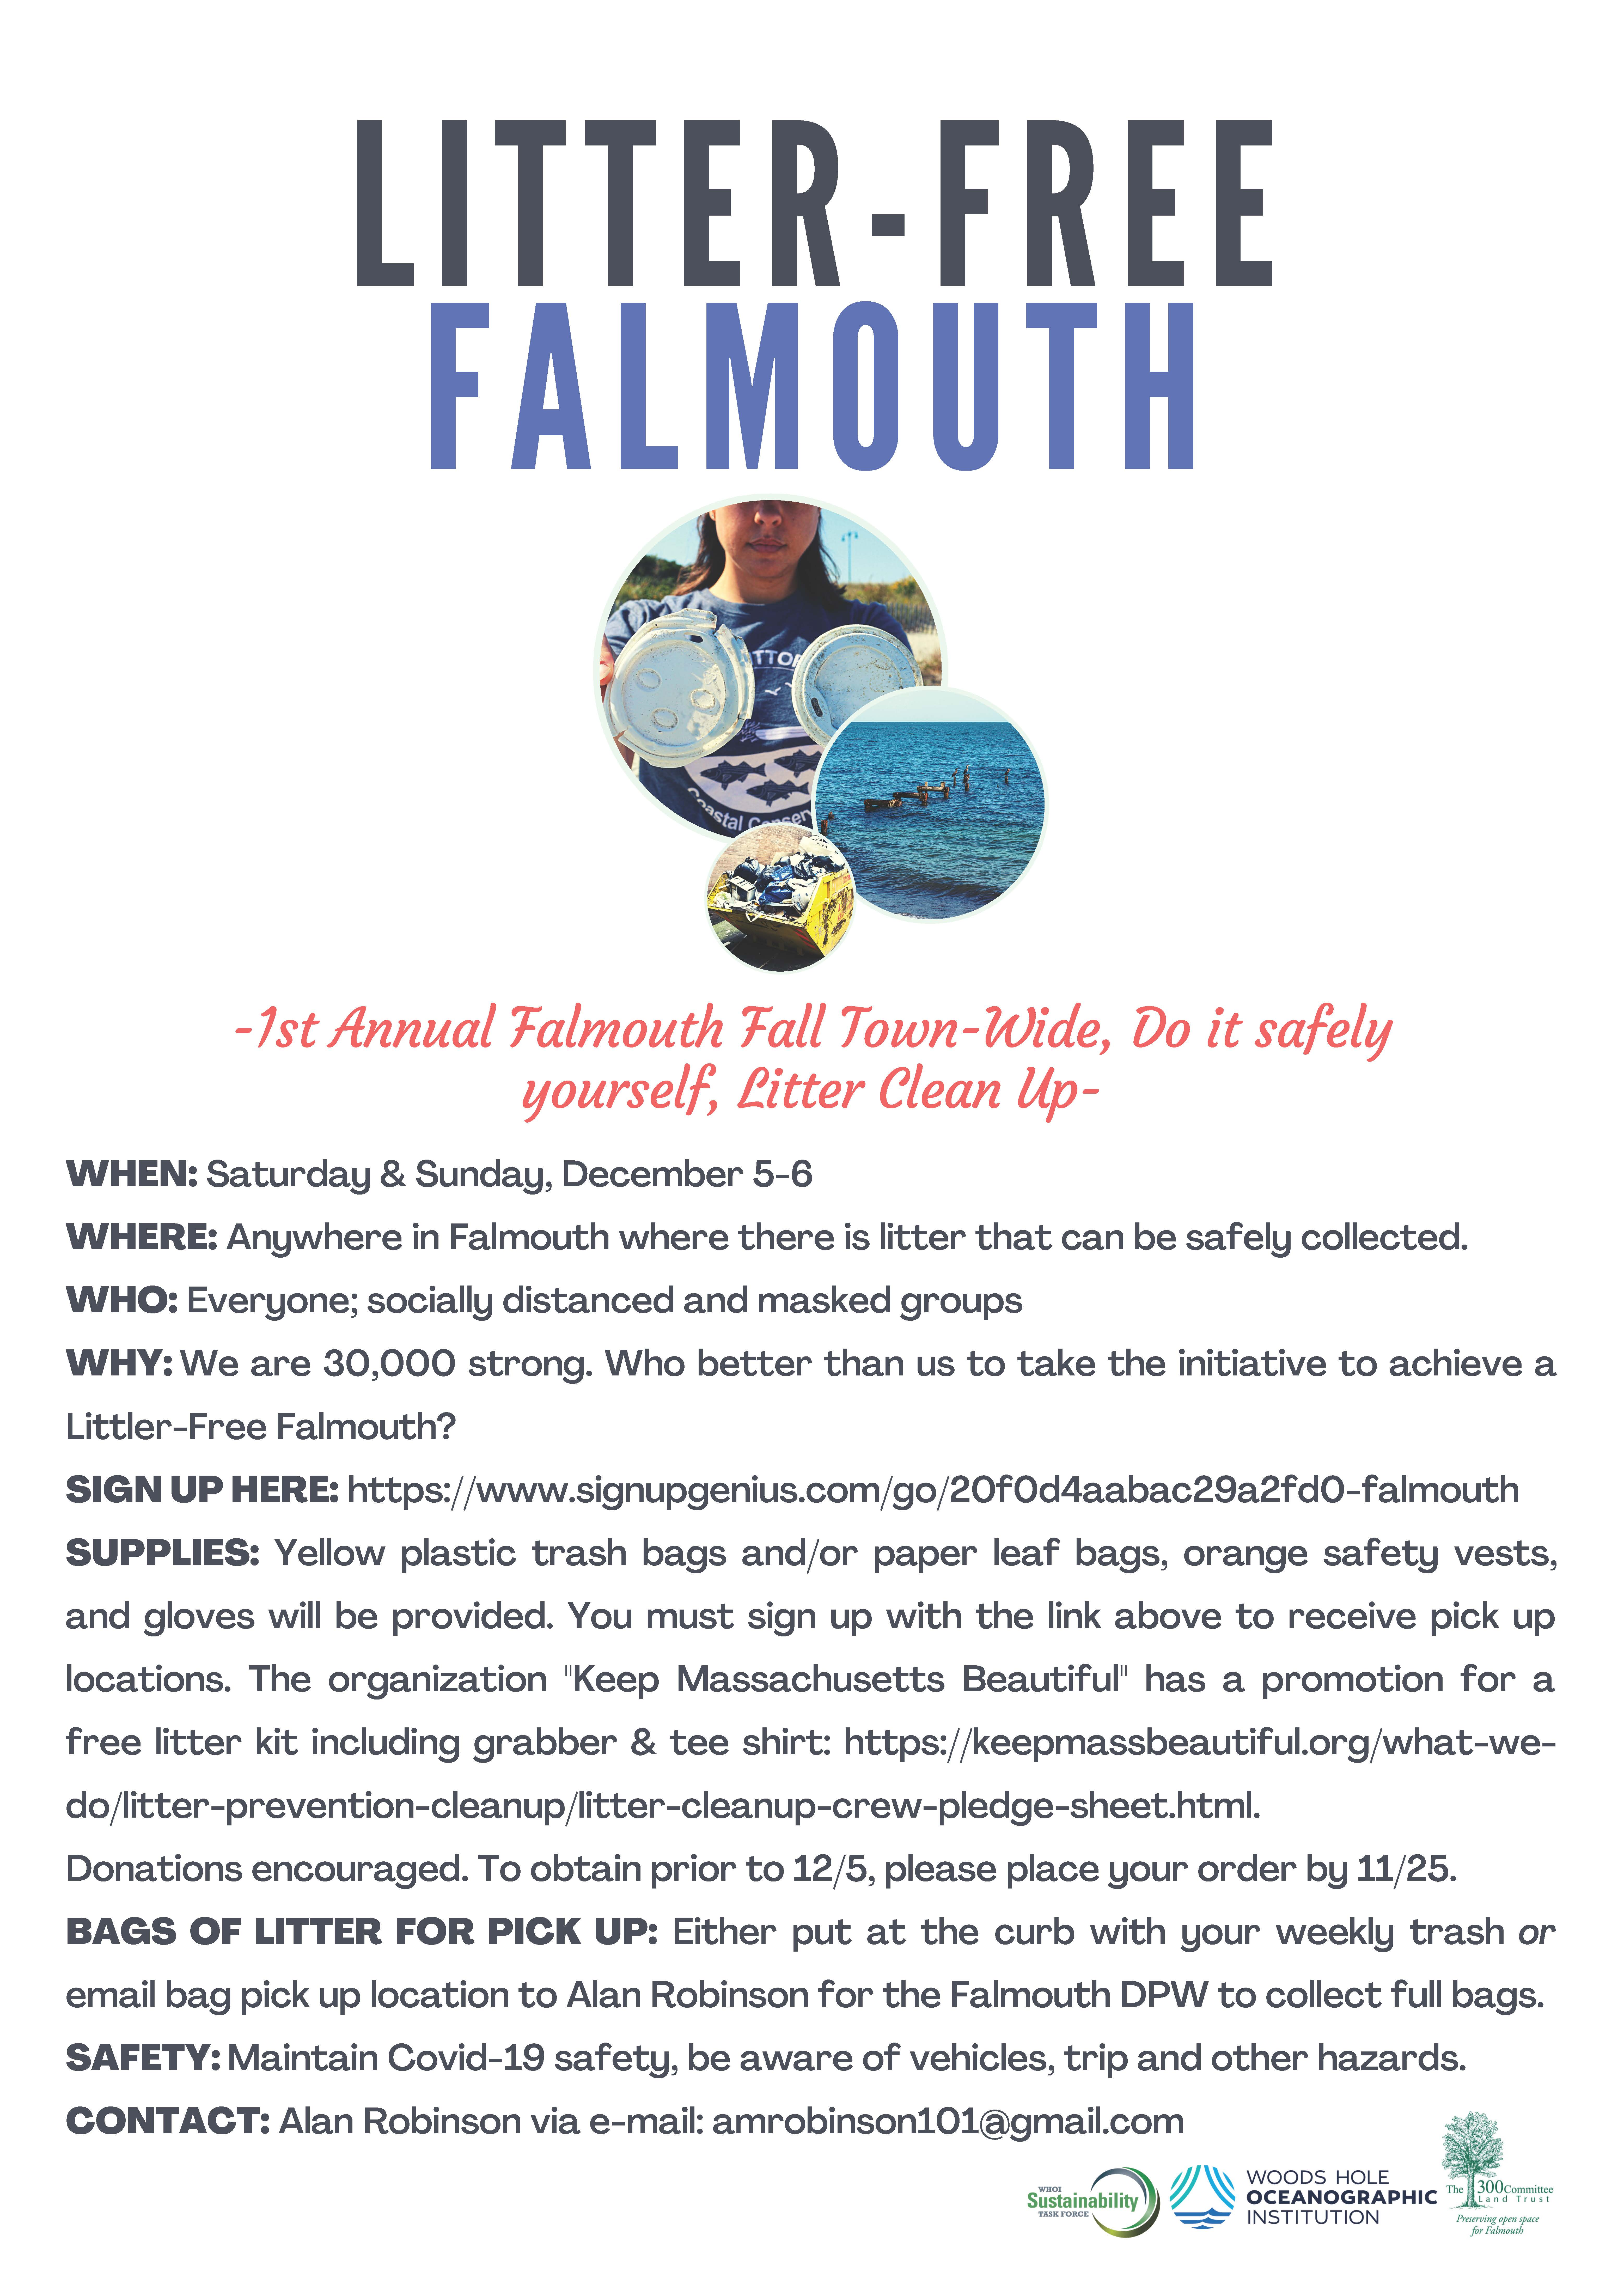 LitterFreeFalmouth Flyer 2020 STF_T3C